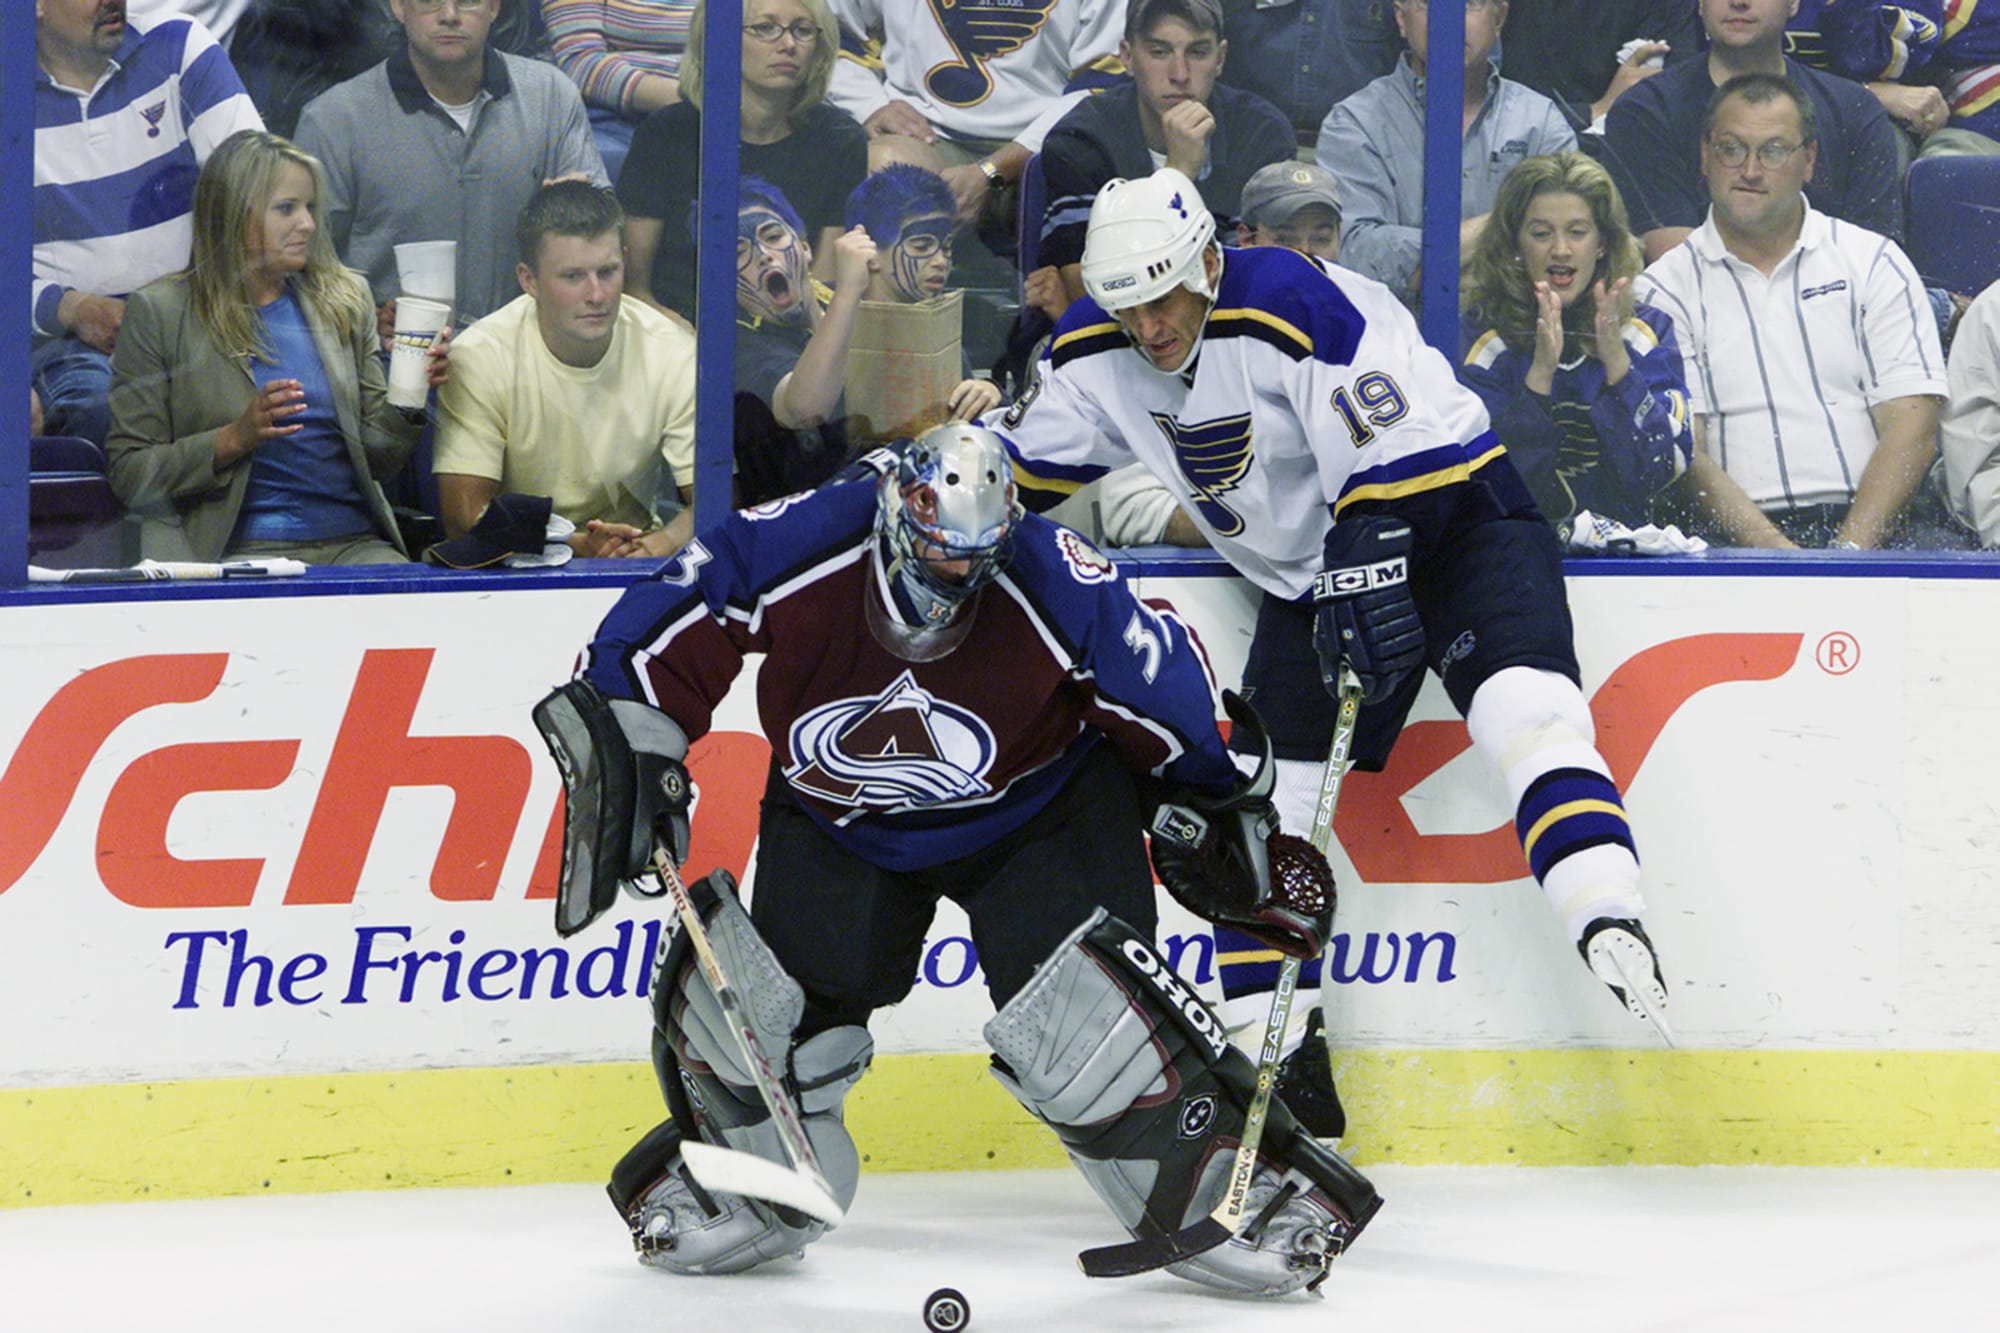 Colorado Avalanche: Why Not Us? The 2001-2002 Season